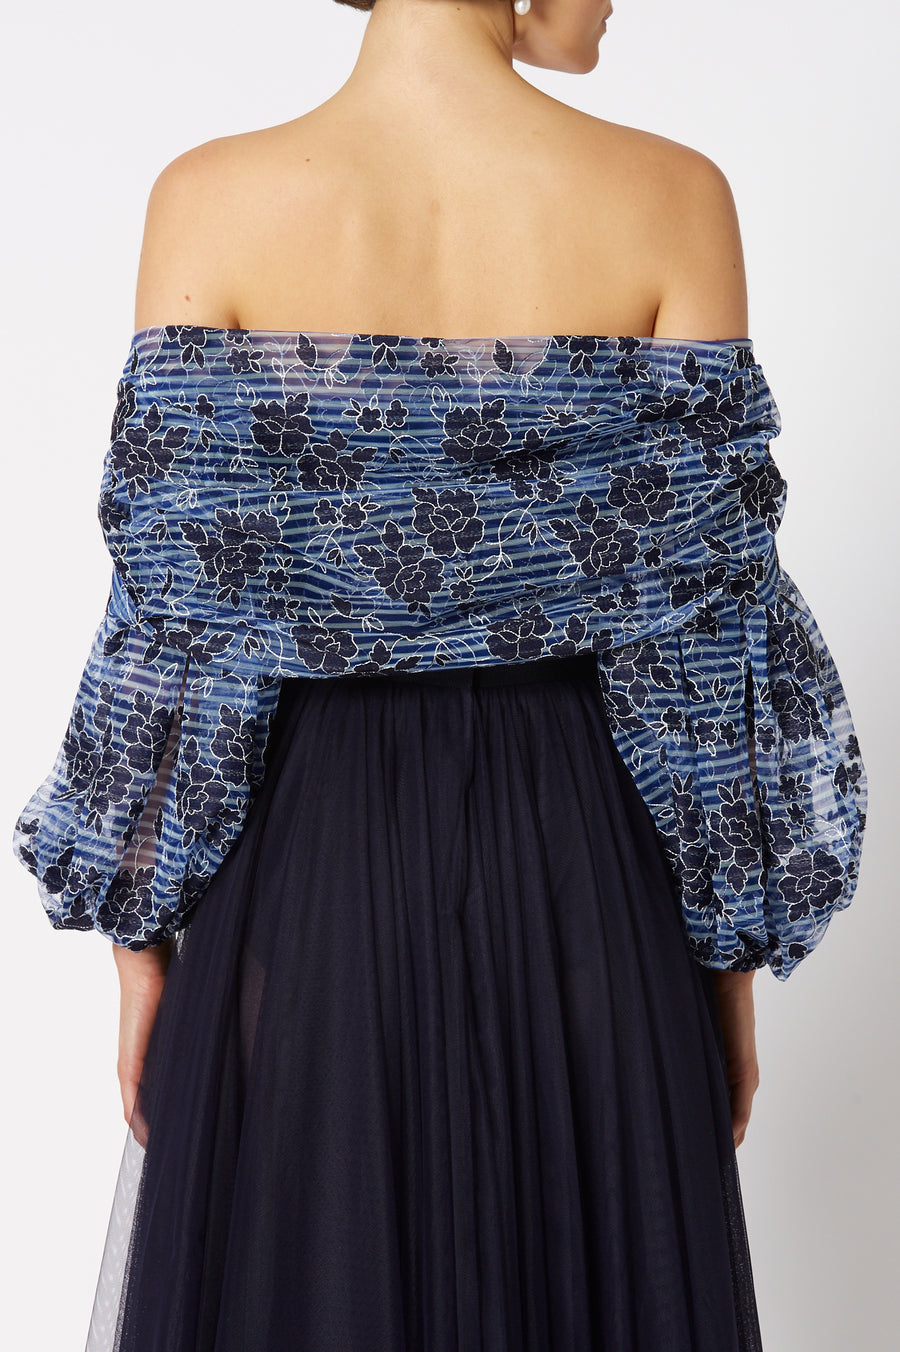 The Embroidered Tulle Bustier in Navy is designed for a slim fit, color navy